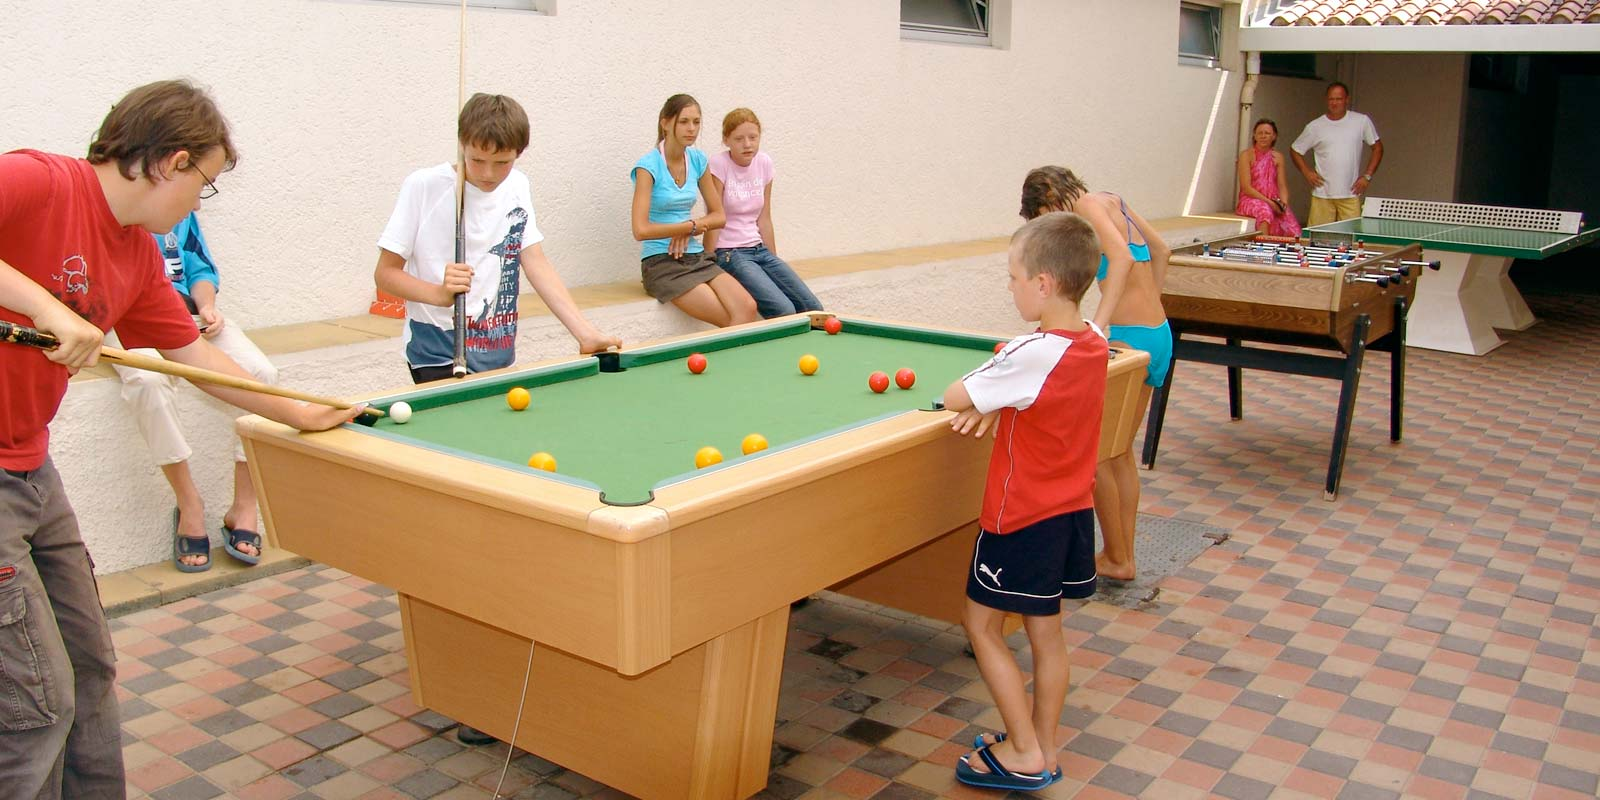 Children playing billiards in the camping playroom at Saint-Hilaire-de-Riez